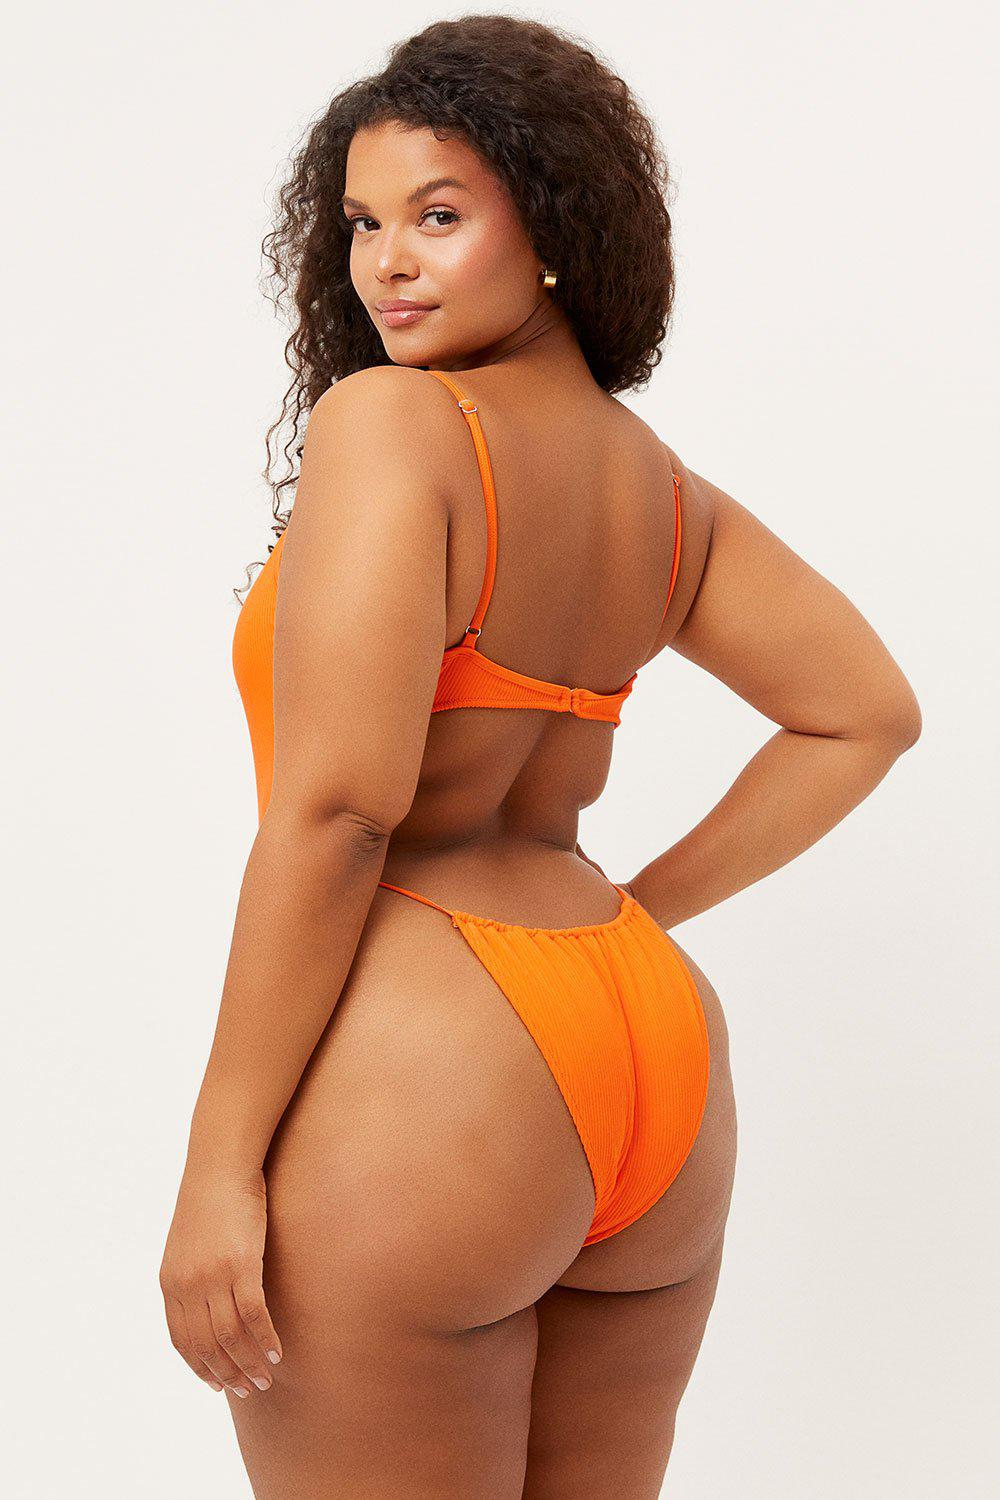 Croft Ribbed High Cut One Piece Swimsuit - Marmalade 2